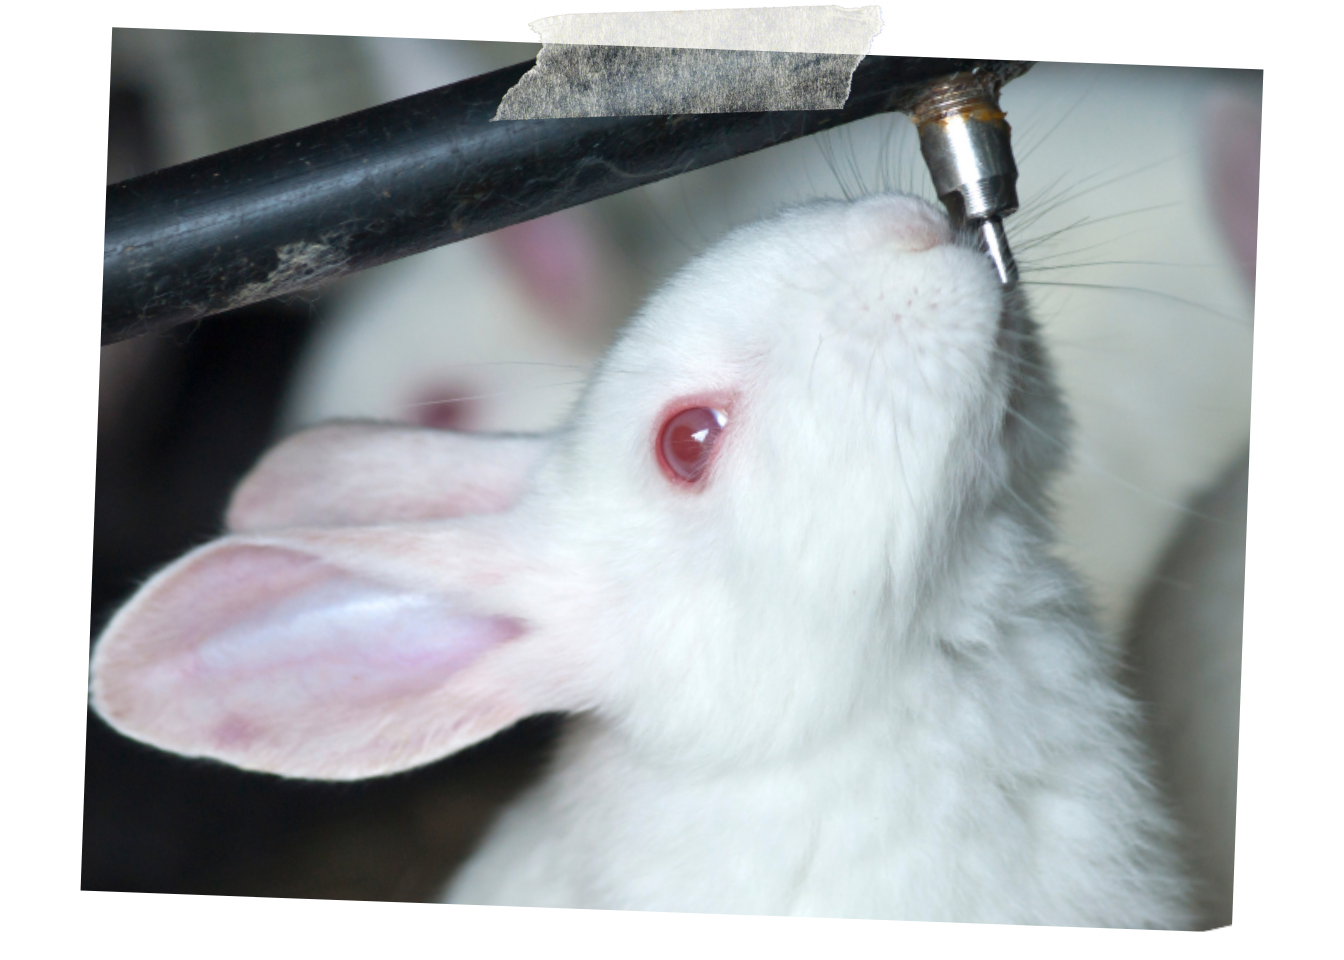 Demand that Southern Research be fined for leaving rabbits to suffer - No laboratory should be allowed to leave innocent rabbits to suffer a painful death because they are not adequately staffed. Join us in asking the USDA's Animal Care Division to levy the maximum fine to Southern Research for this negligence.